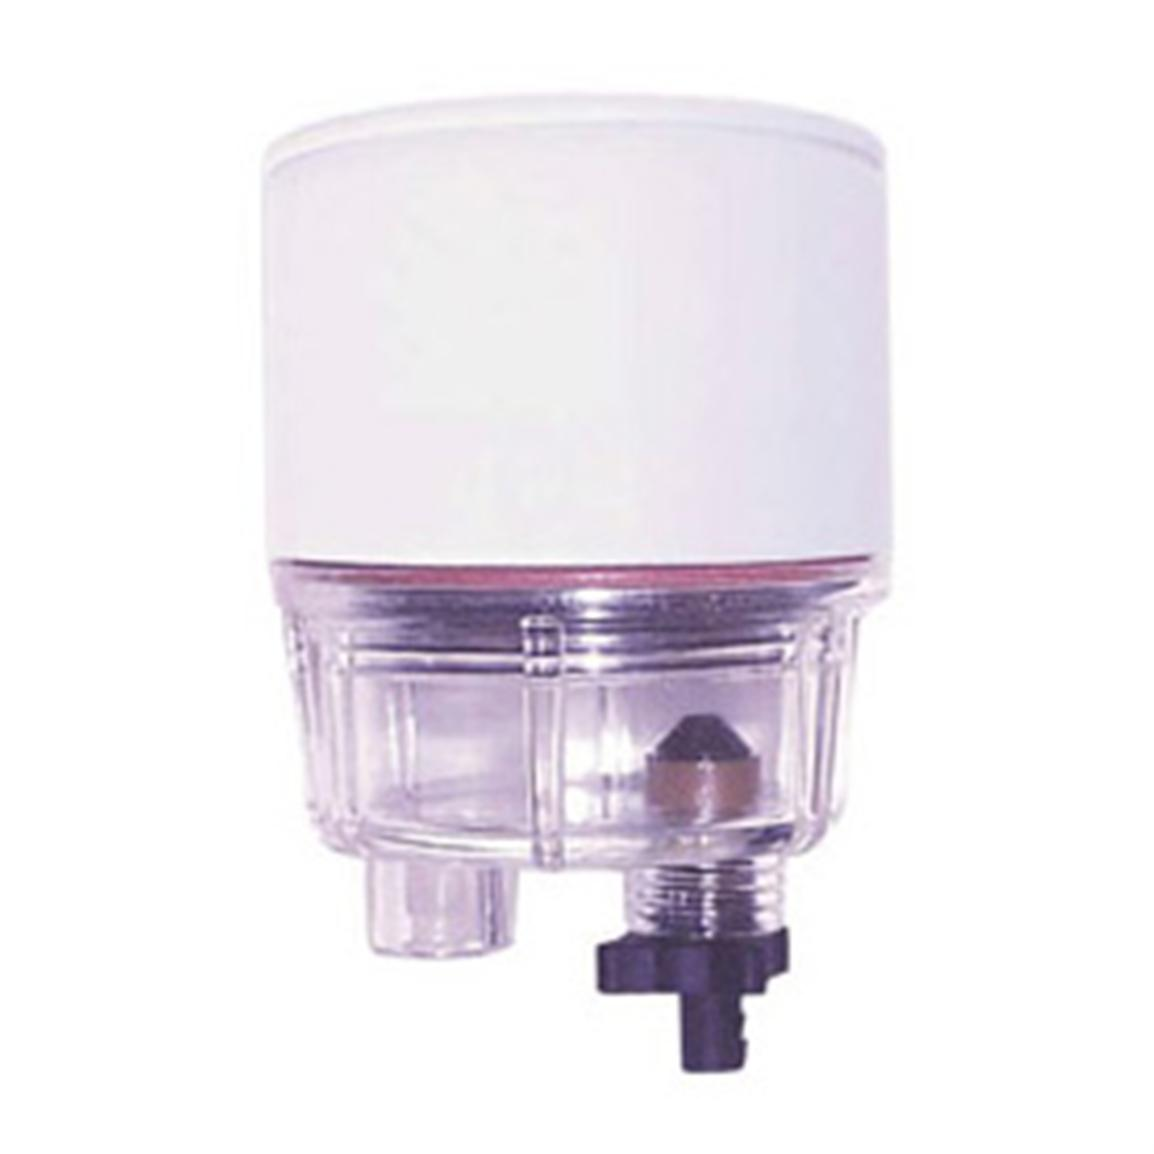 hight resolution of sierra marine fuel filter 10 micron element for racor 320rrac01 mercury 35